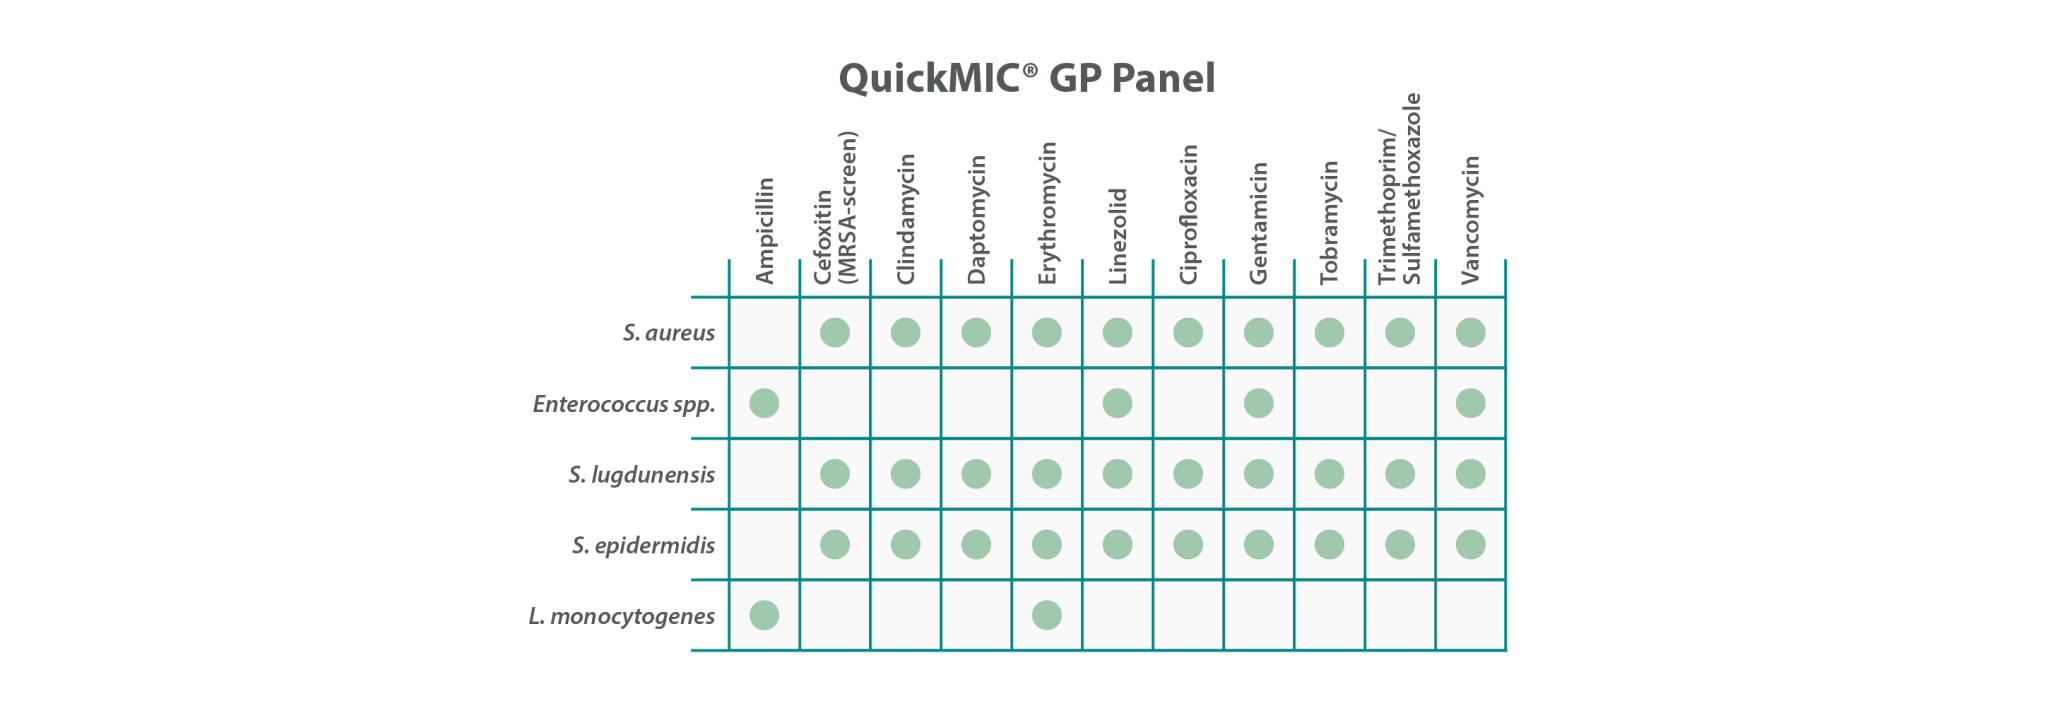 QuickMIC Gram-Positive Antibiotic Panel